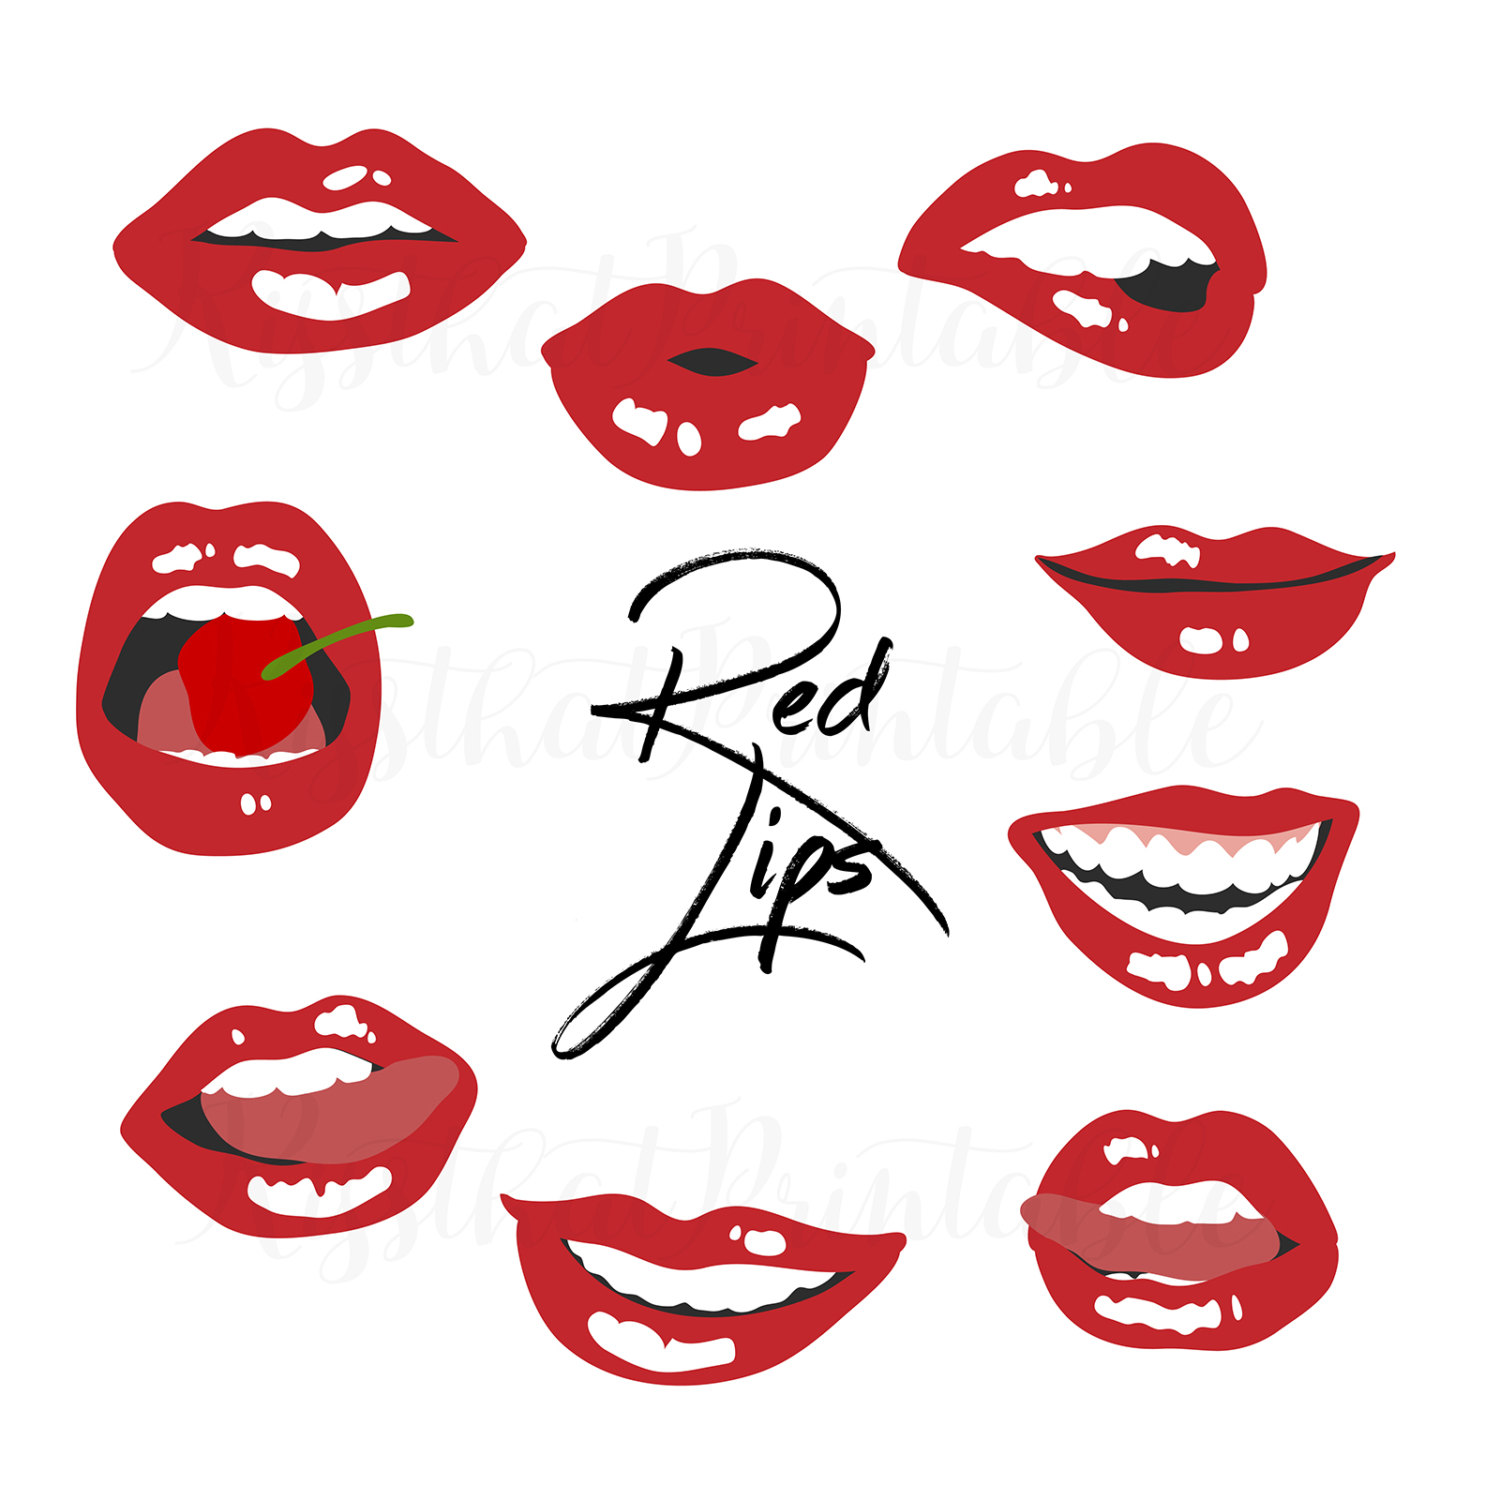 Kisses clipart valentine's day Lips Overlay drawn Lips file